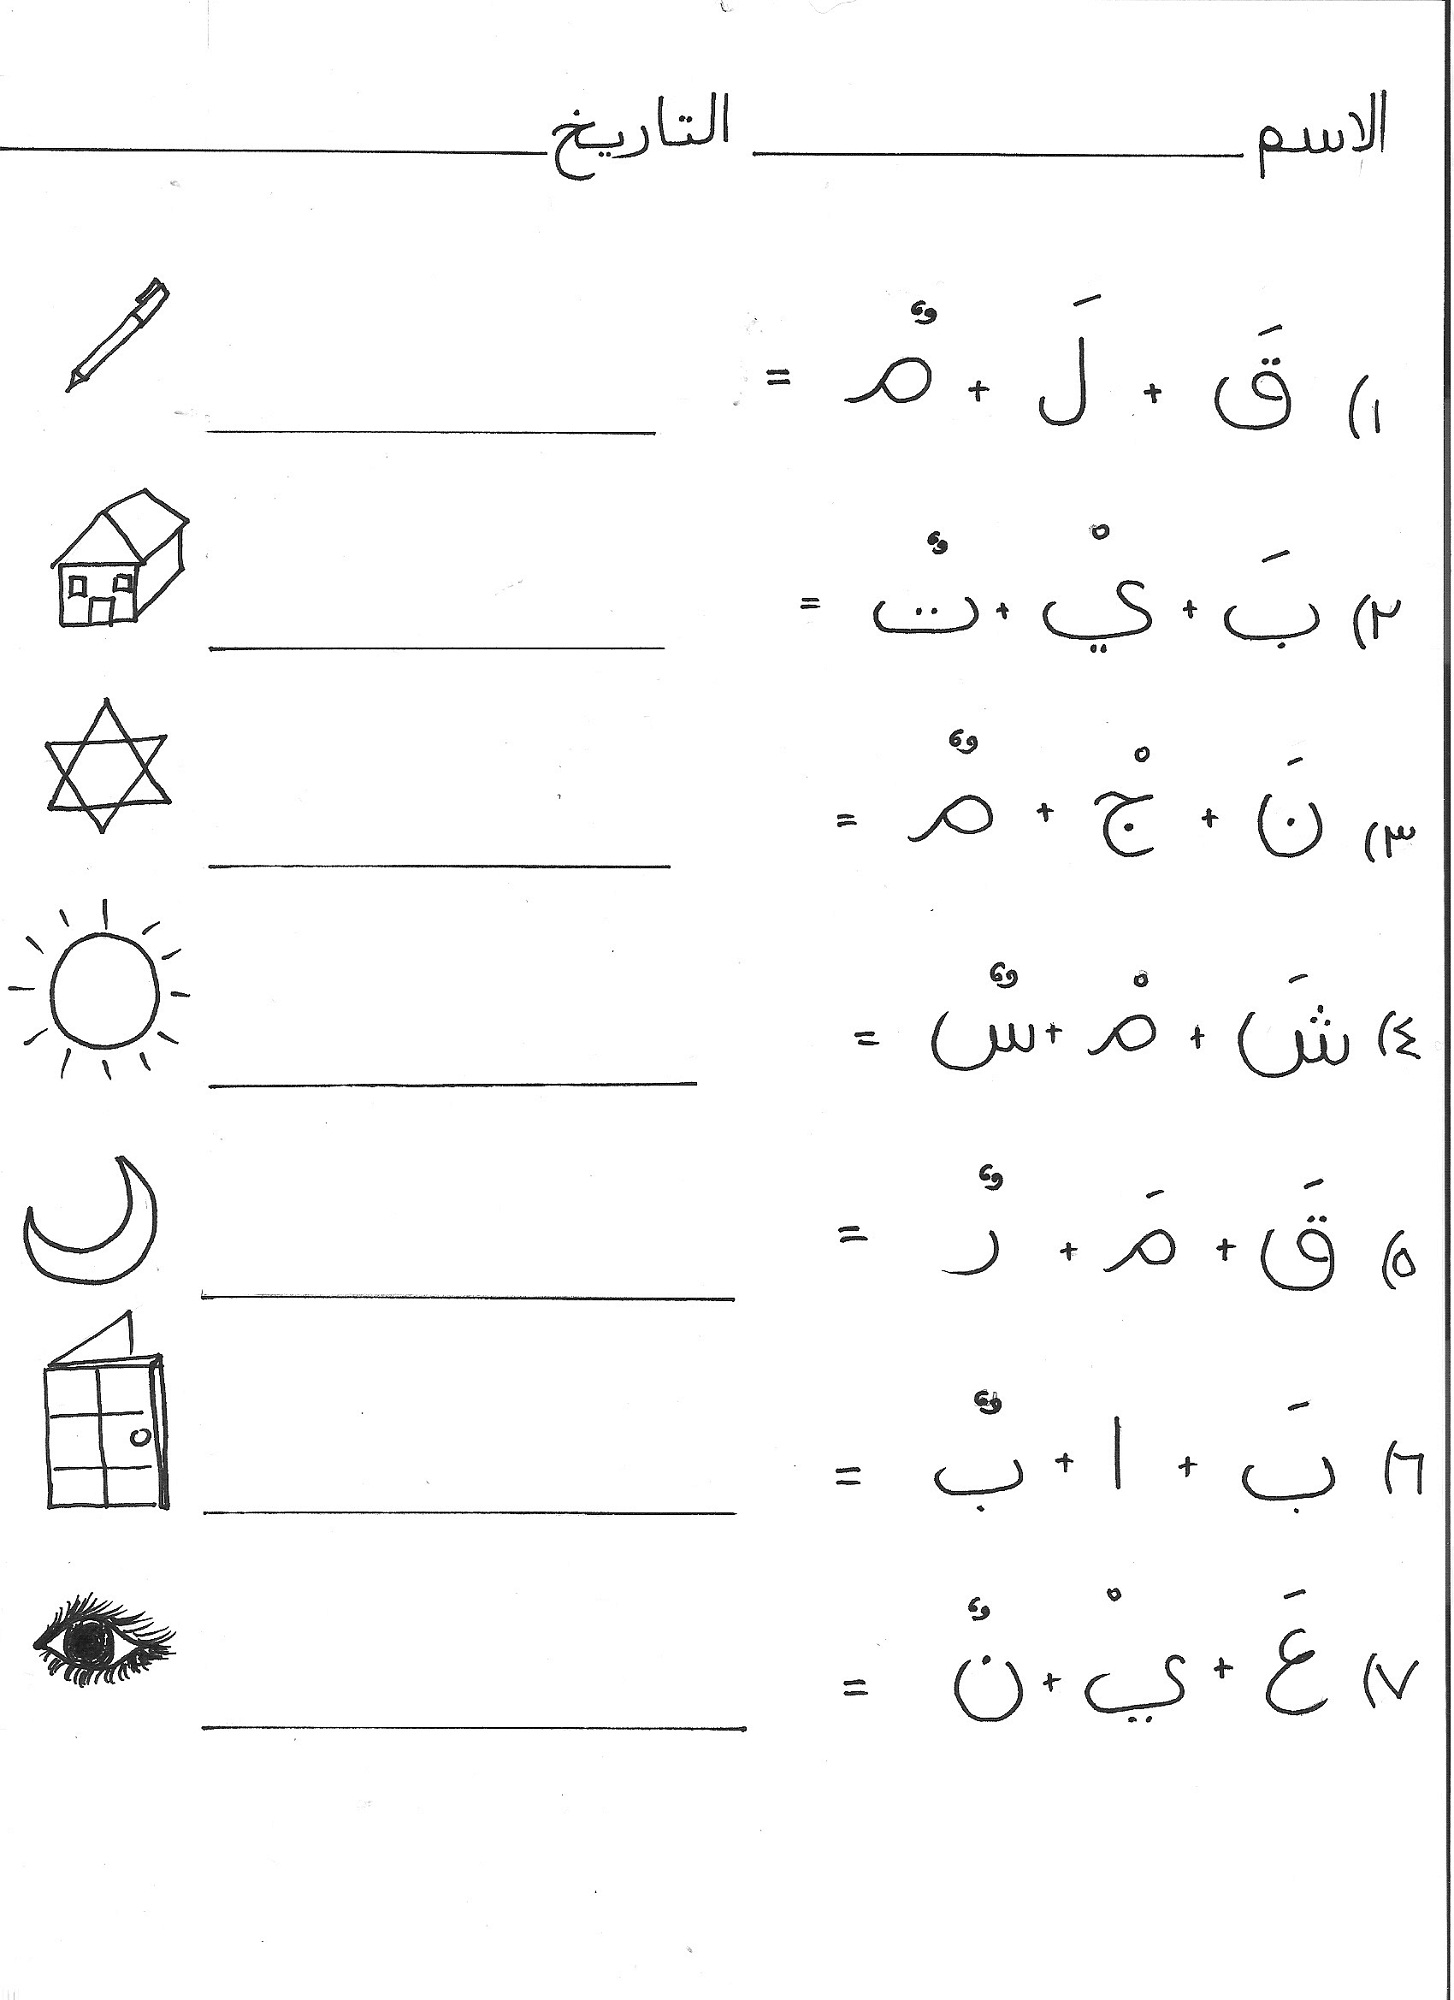 Arabic Alphabet Worksheets Activity Shelter Urdu Jor Tor For with regard to Alphabet Urdu Worksheets Pdf